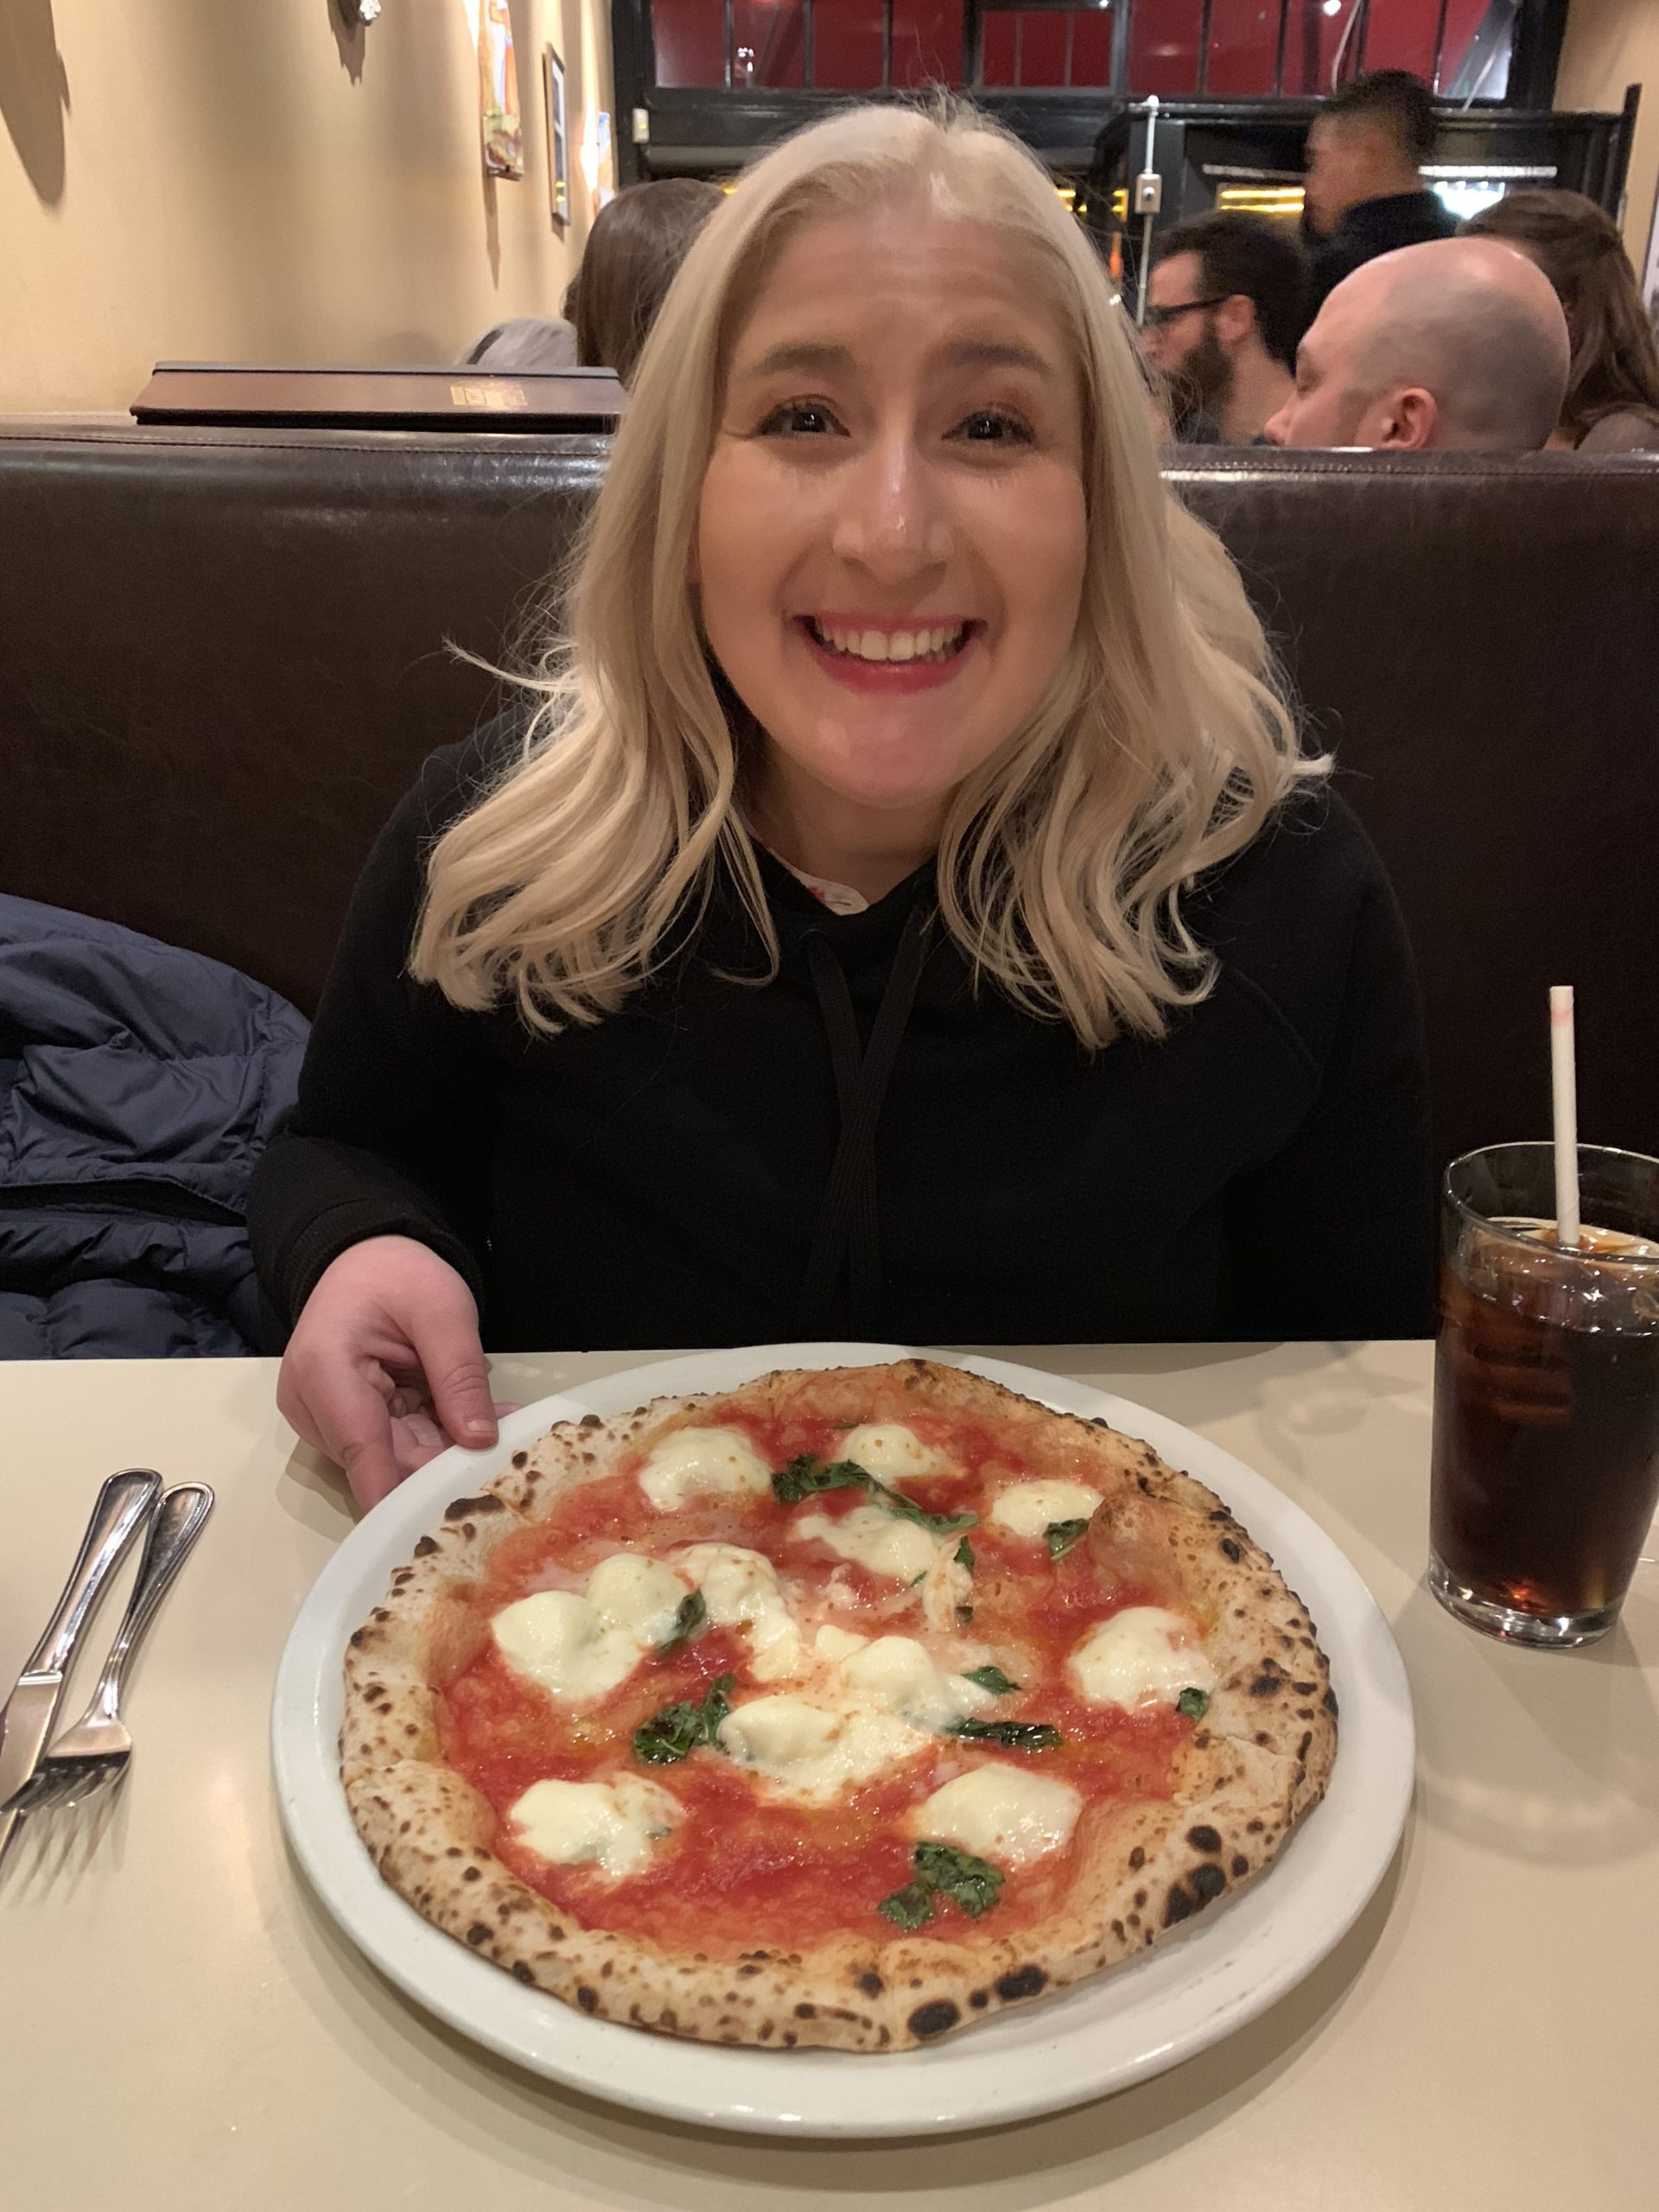 Jacqueline Eating a Margherita pizza from Tony's Napoletana in San Francisco